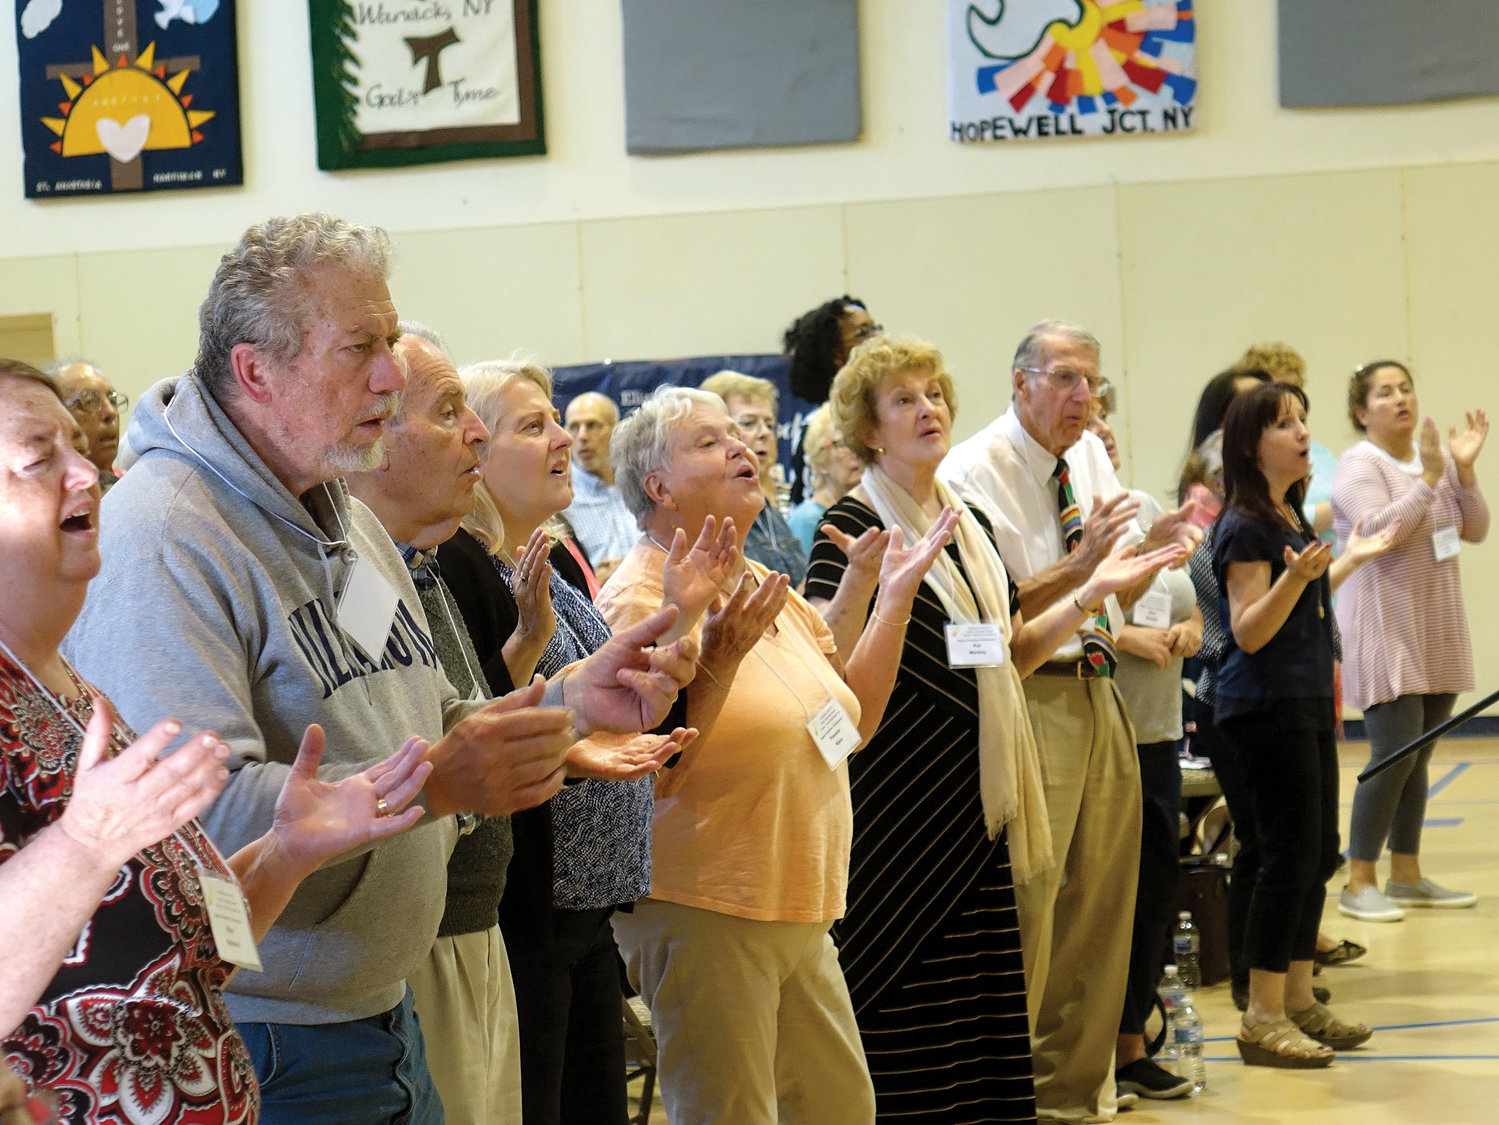 Participants join in prayer and song at the annual Upper Counties Catholic Charismatic Renewal Conference Sept. 28 at Capuchin Youth and Family Ministries in Garrison.